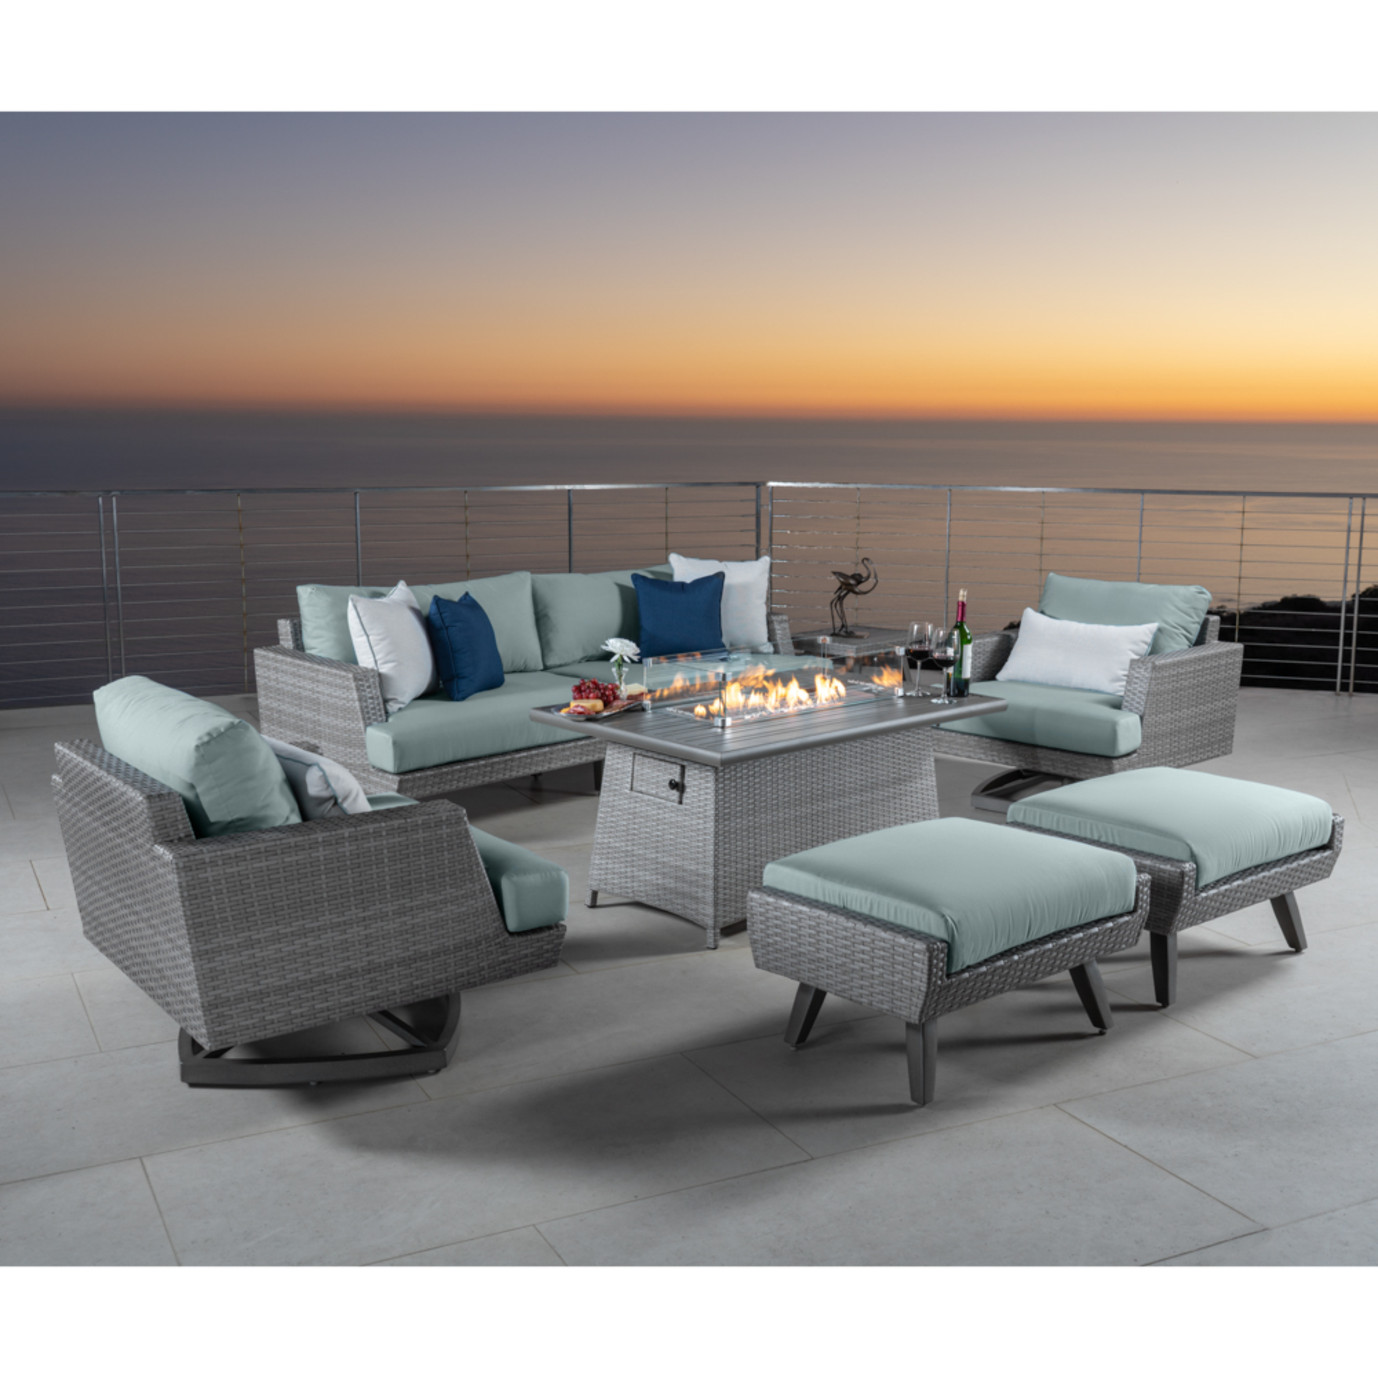 Portofino® Casual 7 Piece Motion Fire Seating Set - Spa Blue